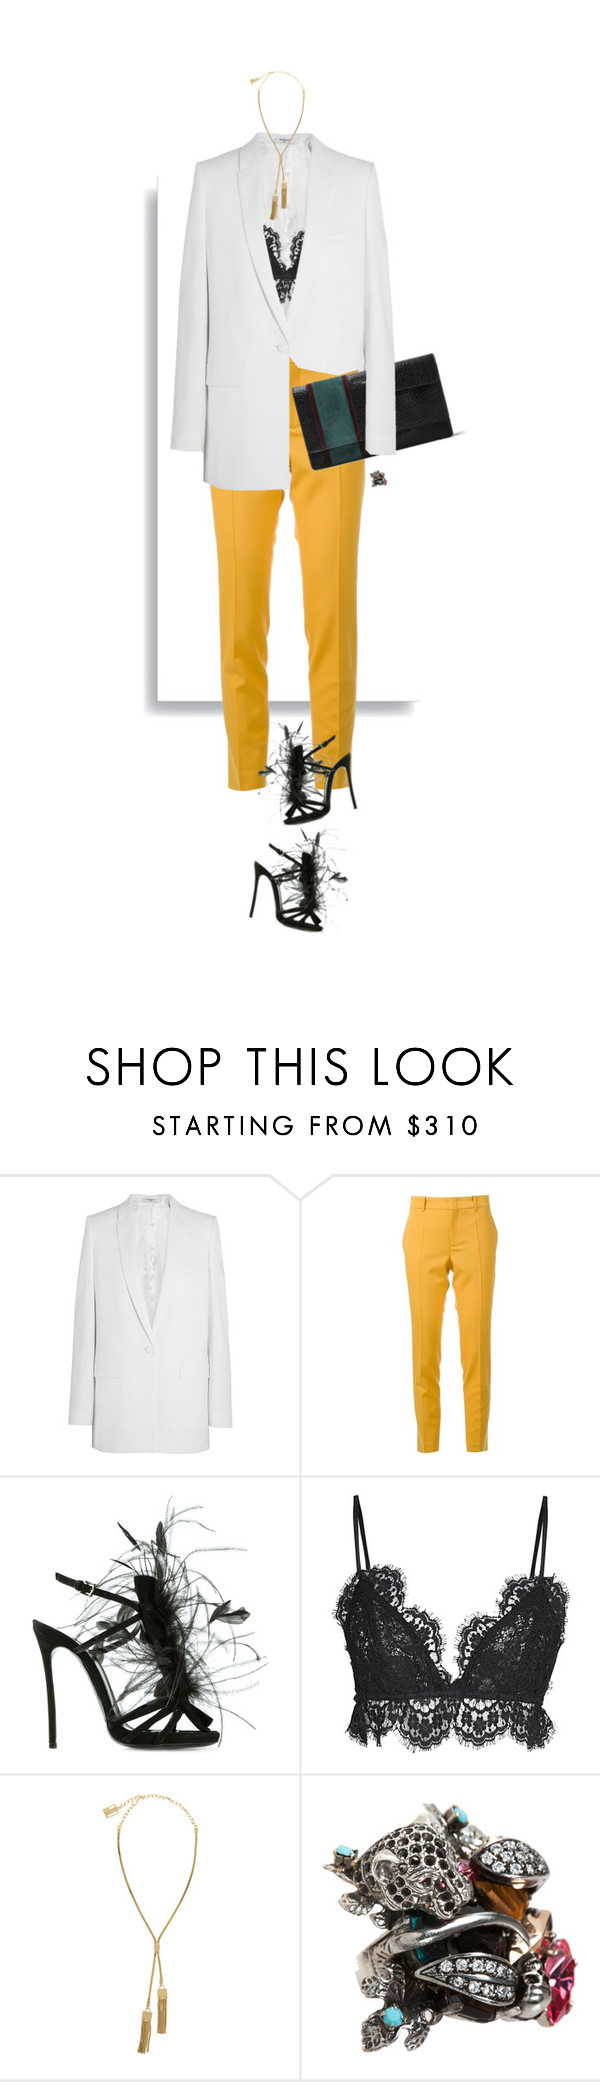 """""""the great day"""" by nandusho ❤ liked on Polyvore featuring moda, Givenchy, Gucci, Dsquared2, Isabel Marant, Lanvin, Iosselliani y WorkWear"""